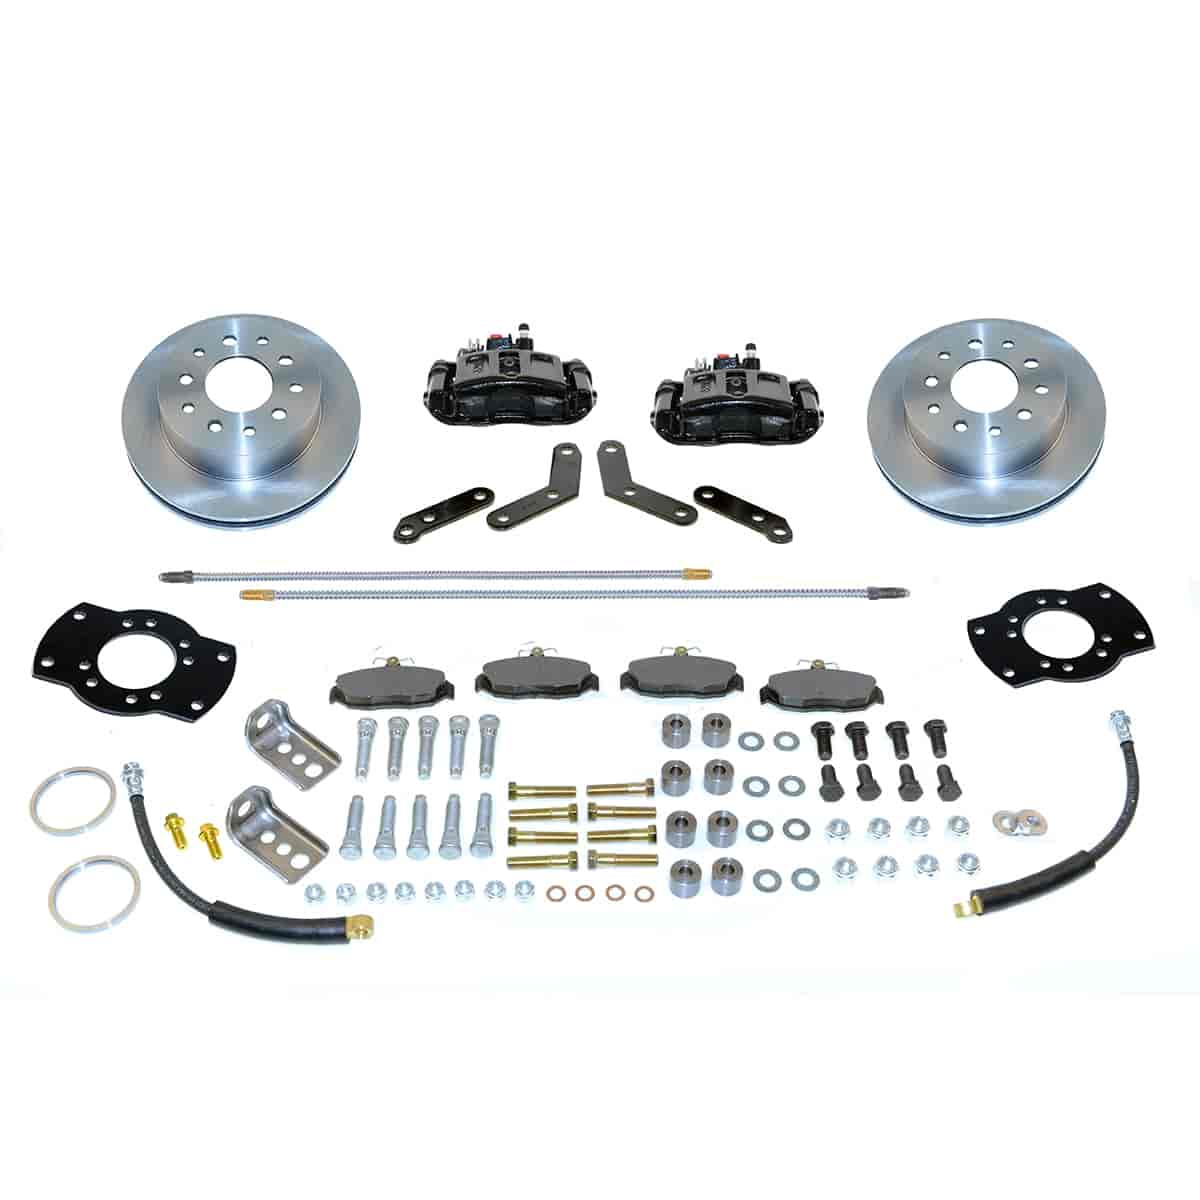 Stainless Steel Brakes A126-1BK - Stainless Steel Brakes Single Piston Rear Drum to Disc Brake Conversion Kits